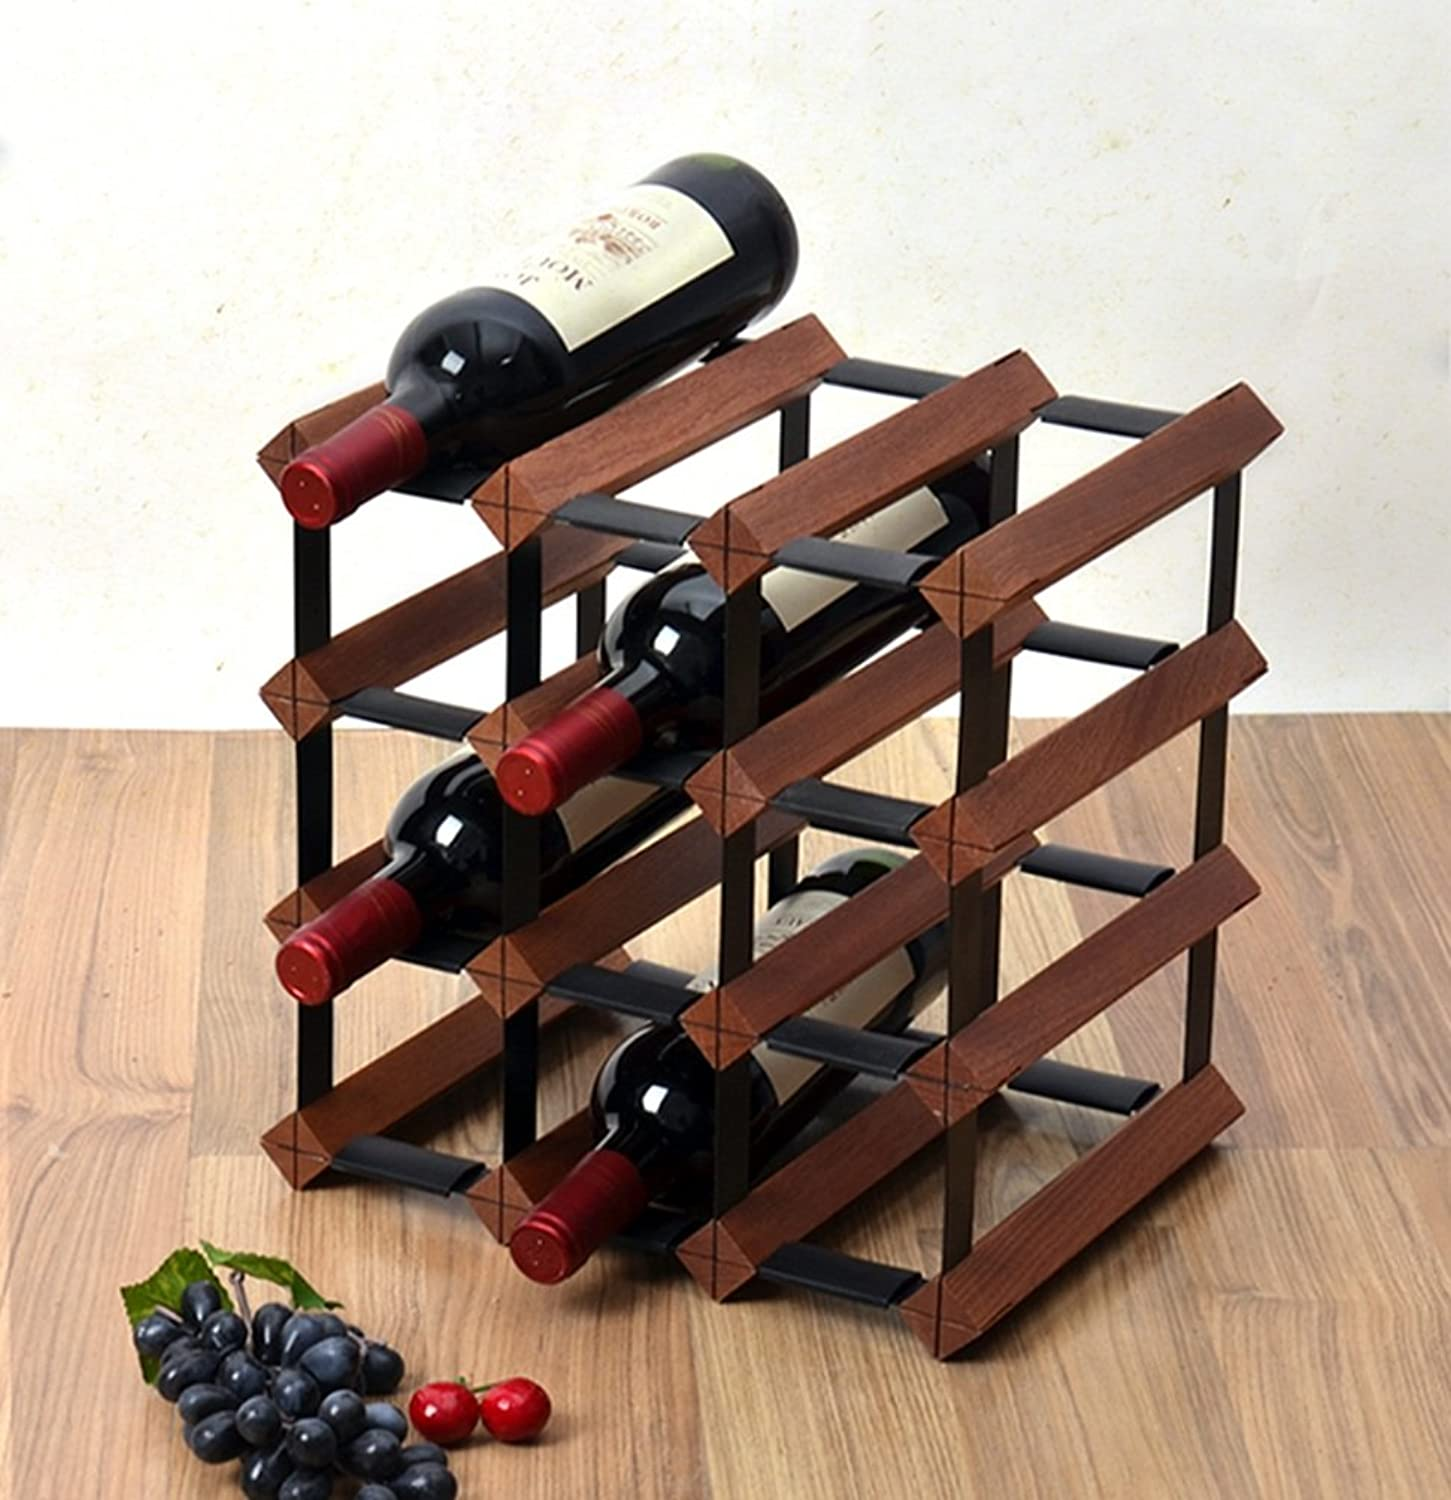 JJJJD 4 Tier Wooden Wine Rack,Freestanding Metal Steel Wood Cabinet Bottle Holder,Wine Bottles Organiser On Table,Wine Cupboard Storage Decoration,Ready to Assemble (Size   12 Bottle)